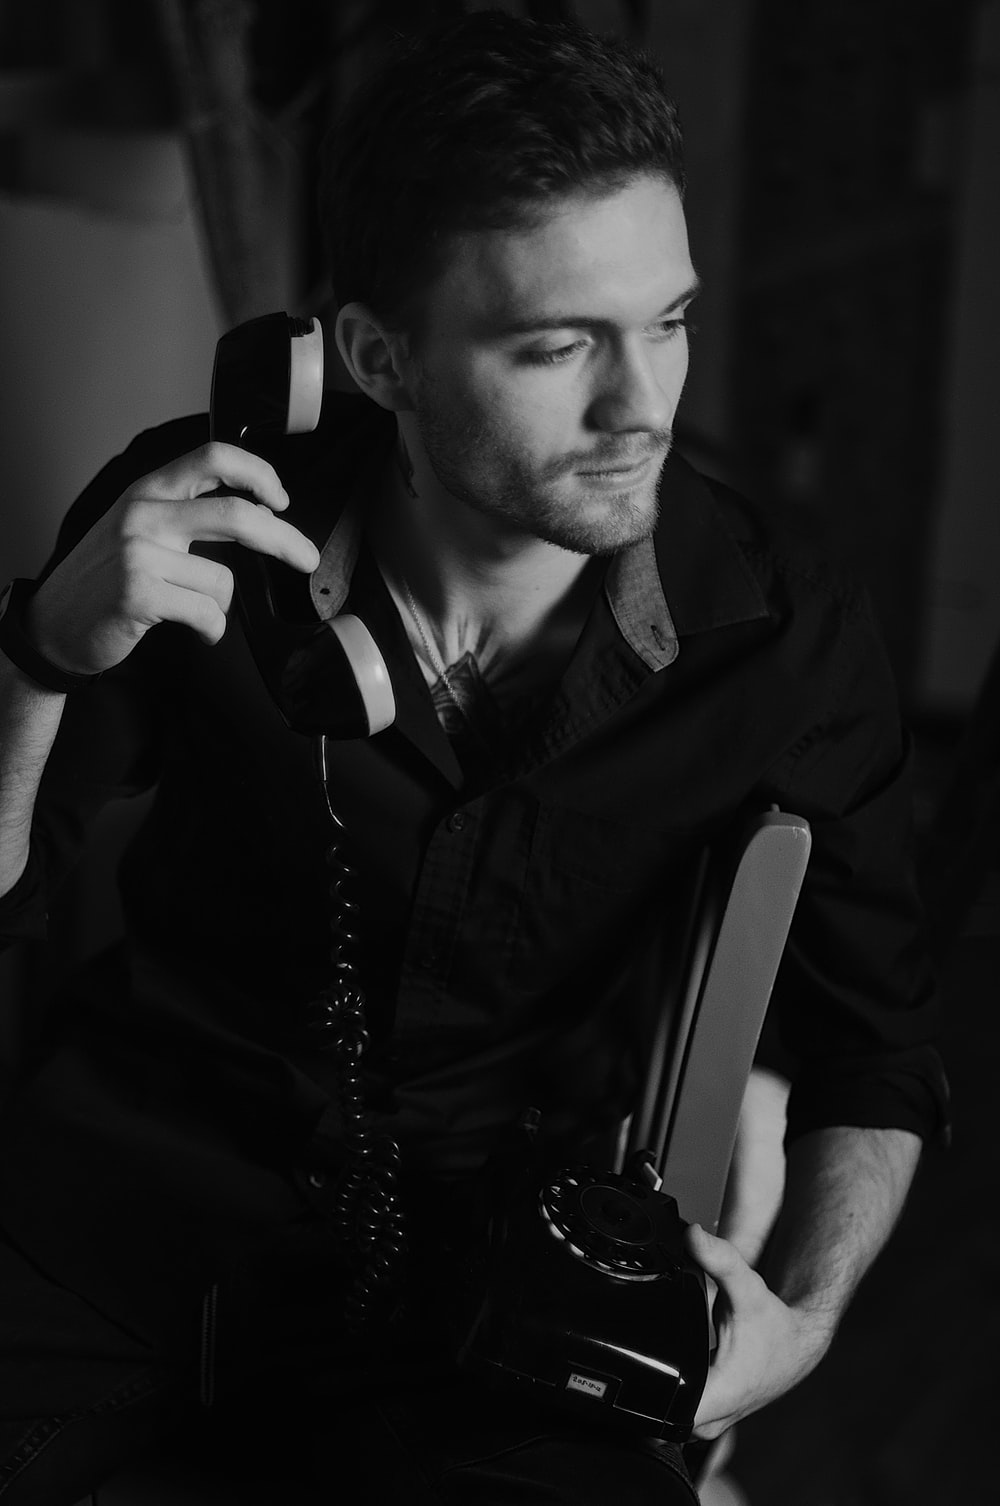 grayscale photo of man holding telephone